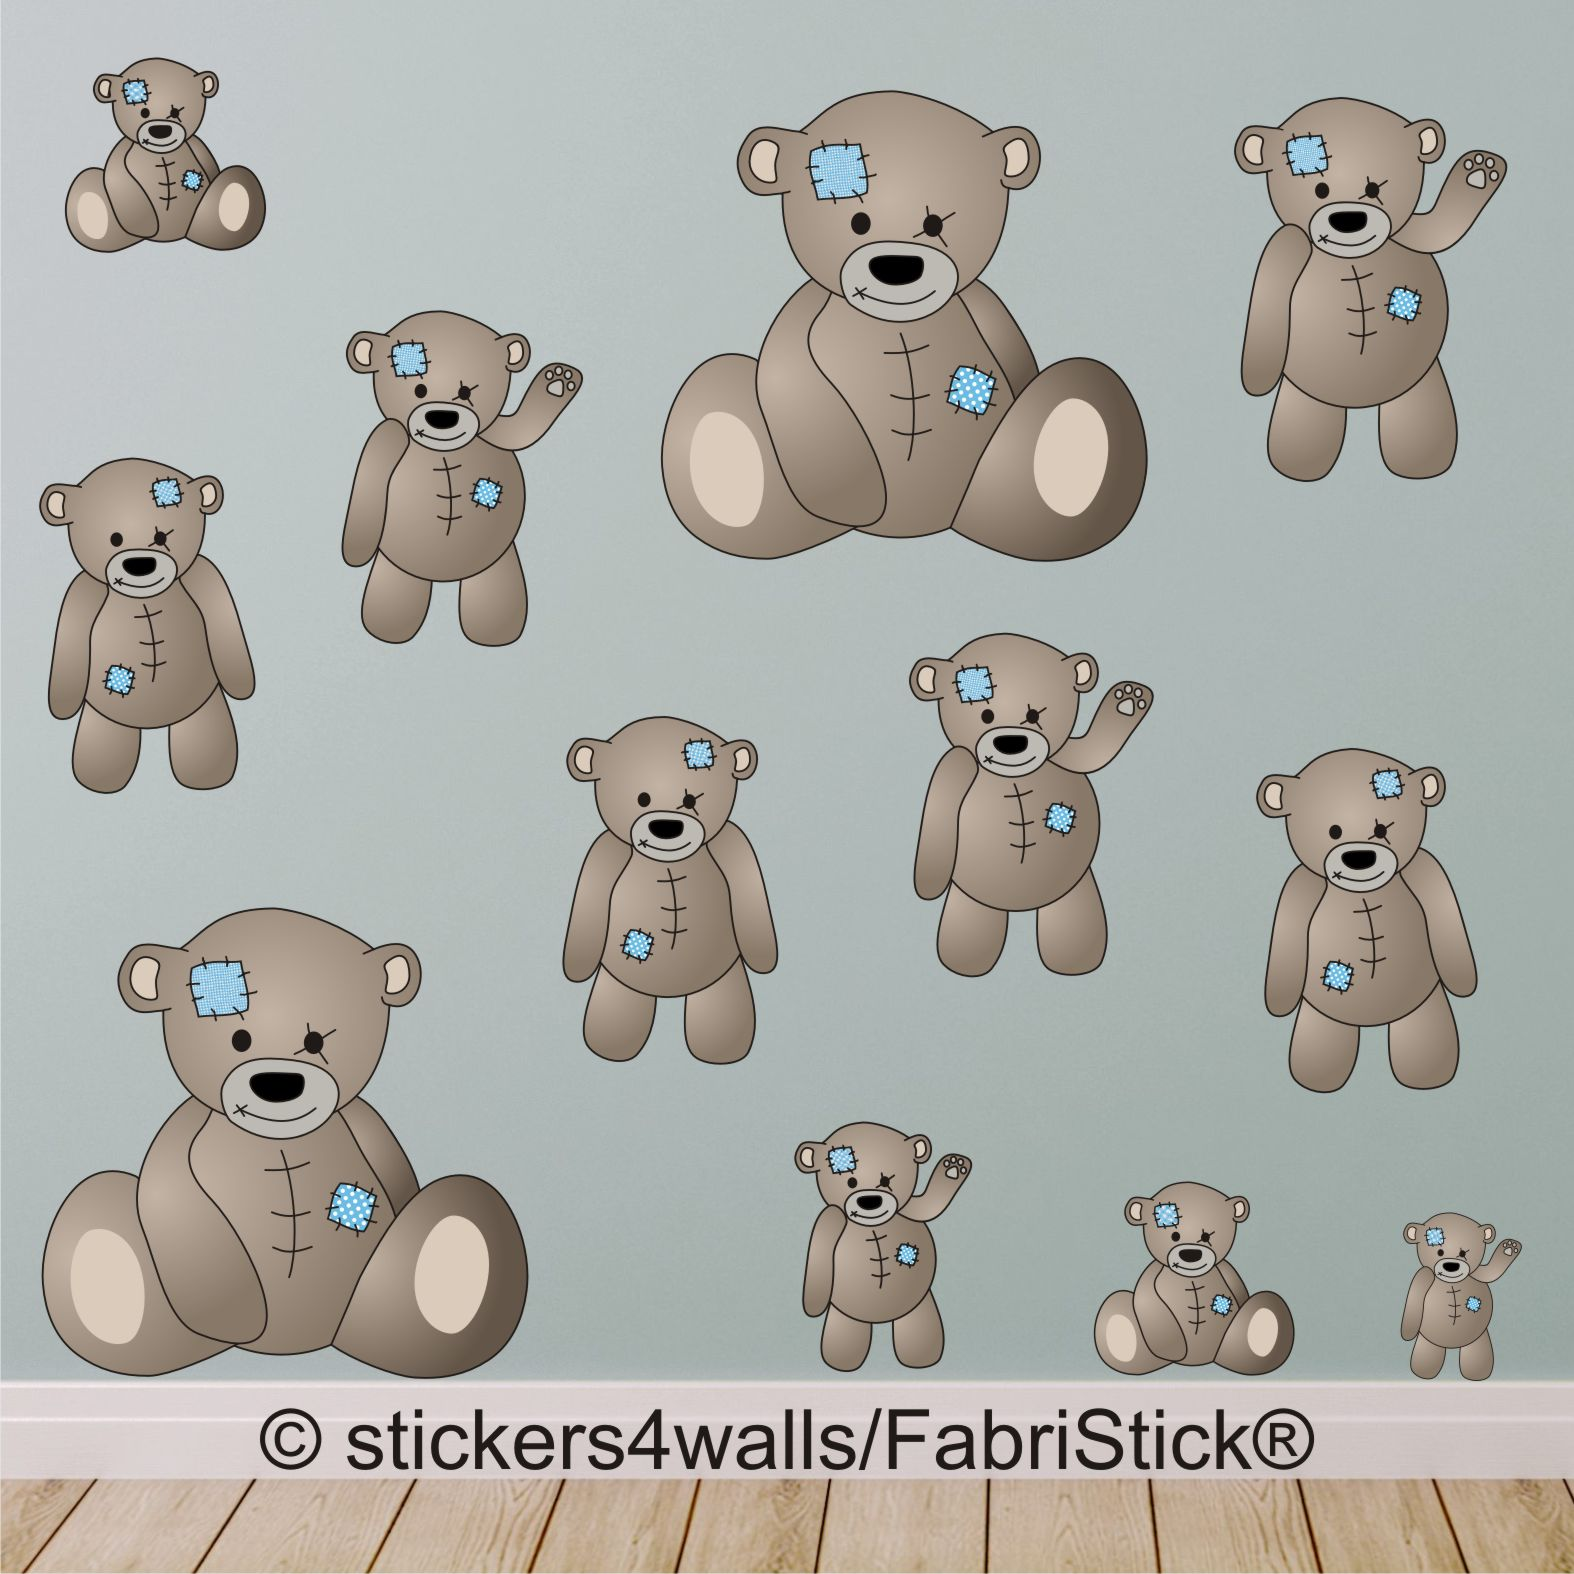 Fabristick® Stickers Are Perfect For Nurseries